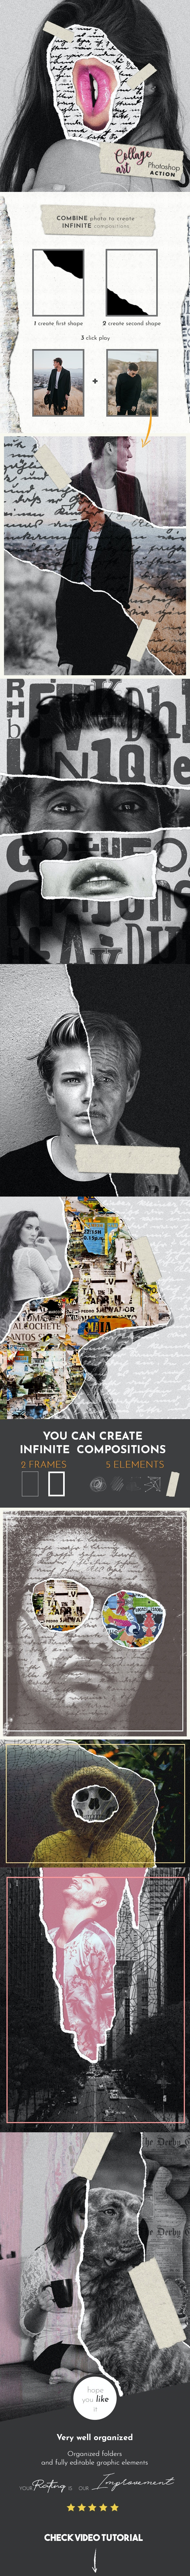 Collage Art Photoshop Action - Photo Effects Actions